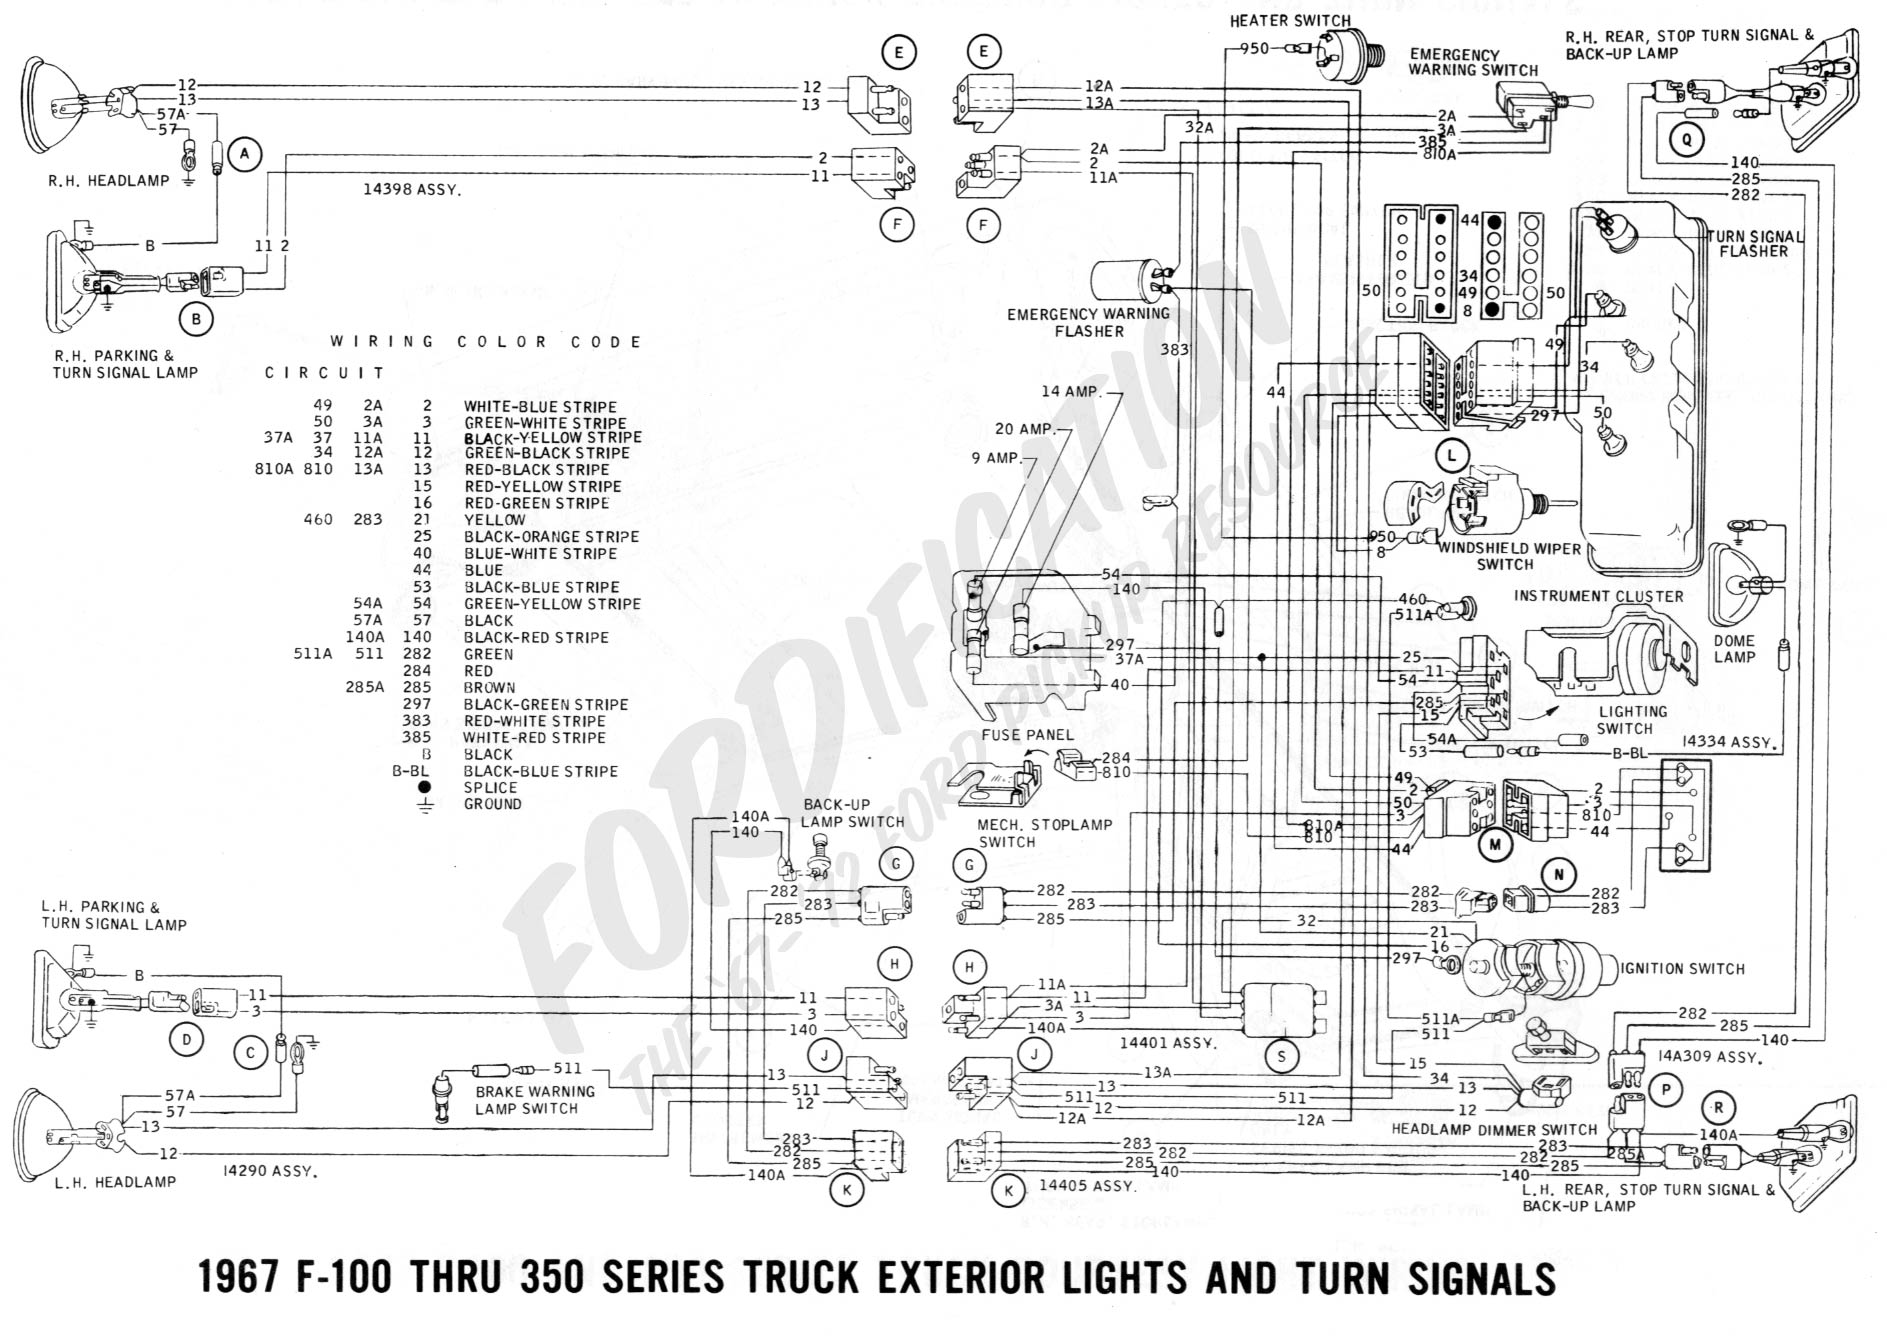 Ford F 150 Wiring Diagram Archive Of Automotive 7 Pin Trailer 2006 Truck Simple Rh David Huggett Co Uk 2015 Plug 2010